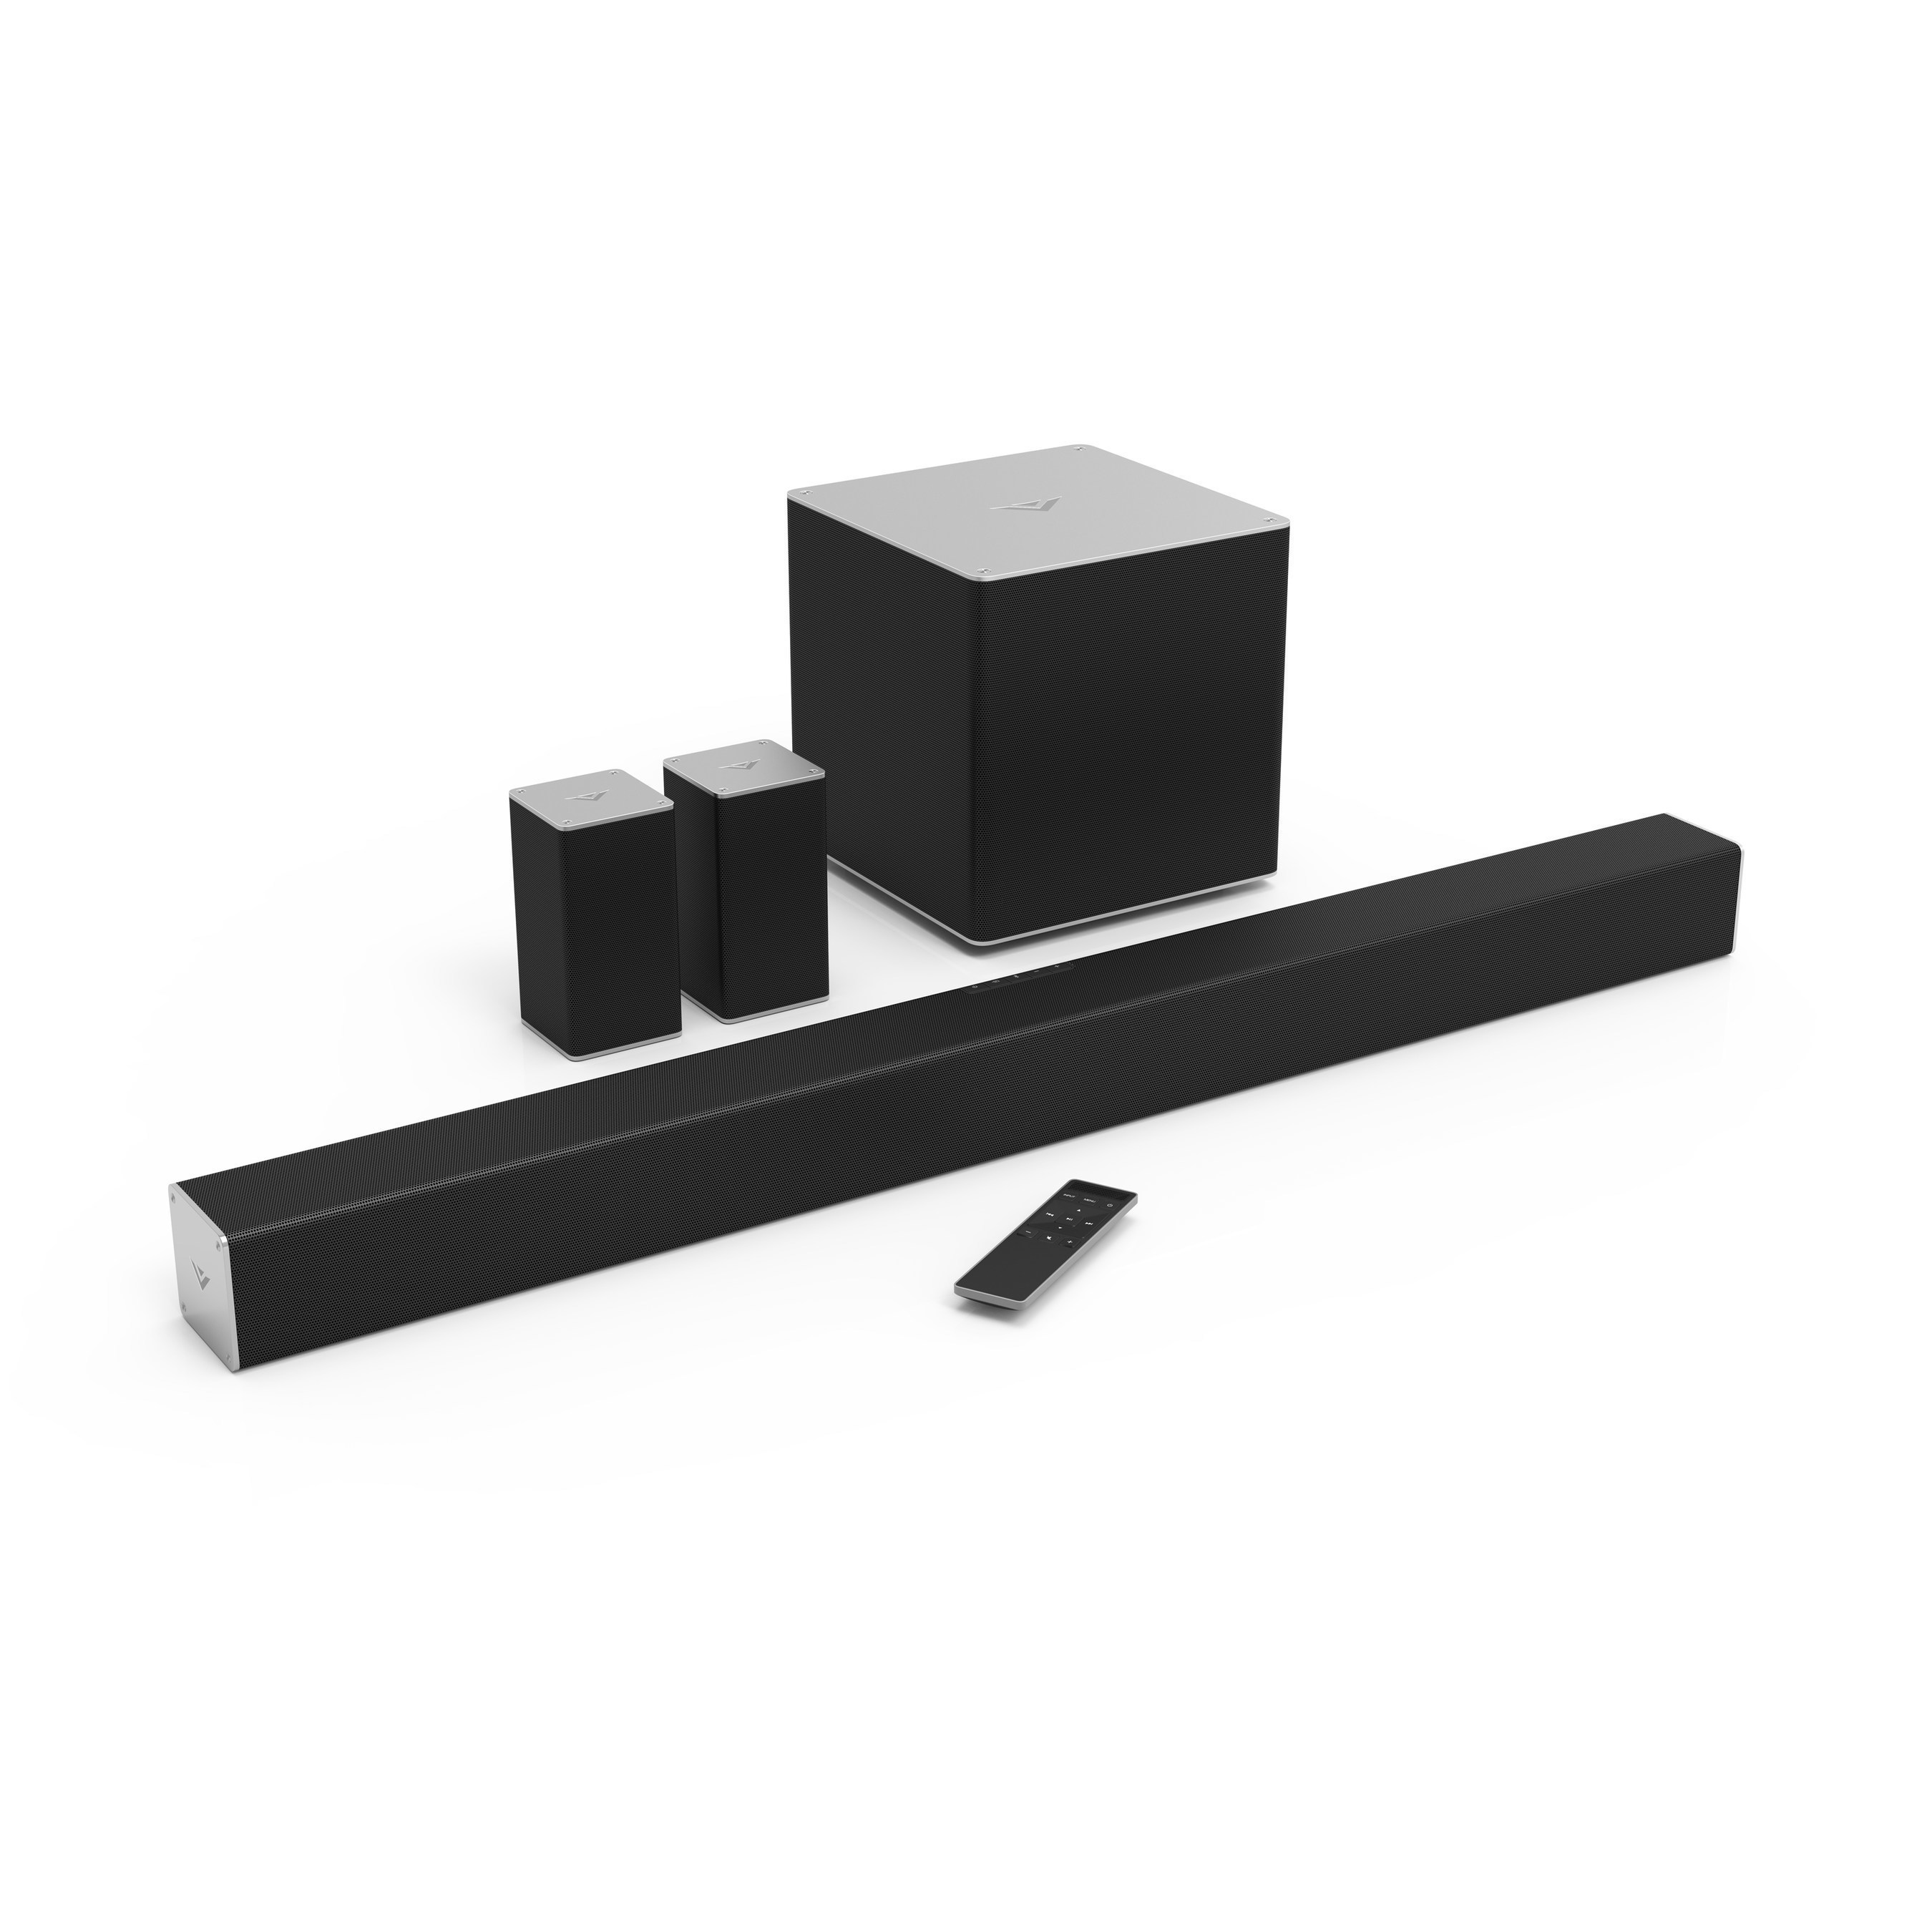 """Highlighted by the 40"""" 5.1 Sound Bar System, the Line-Up Boasts Exceptional Audio Performance for Any Home Theater and the Convenience of Seamless Bluetooth Streaming"""